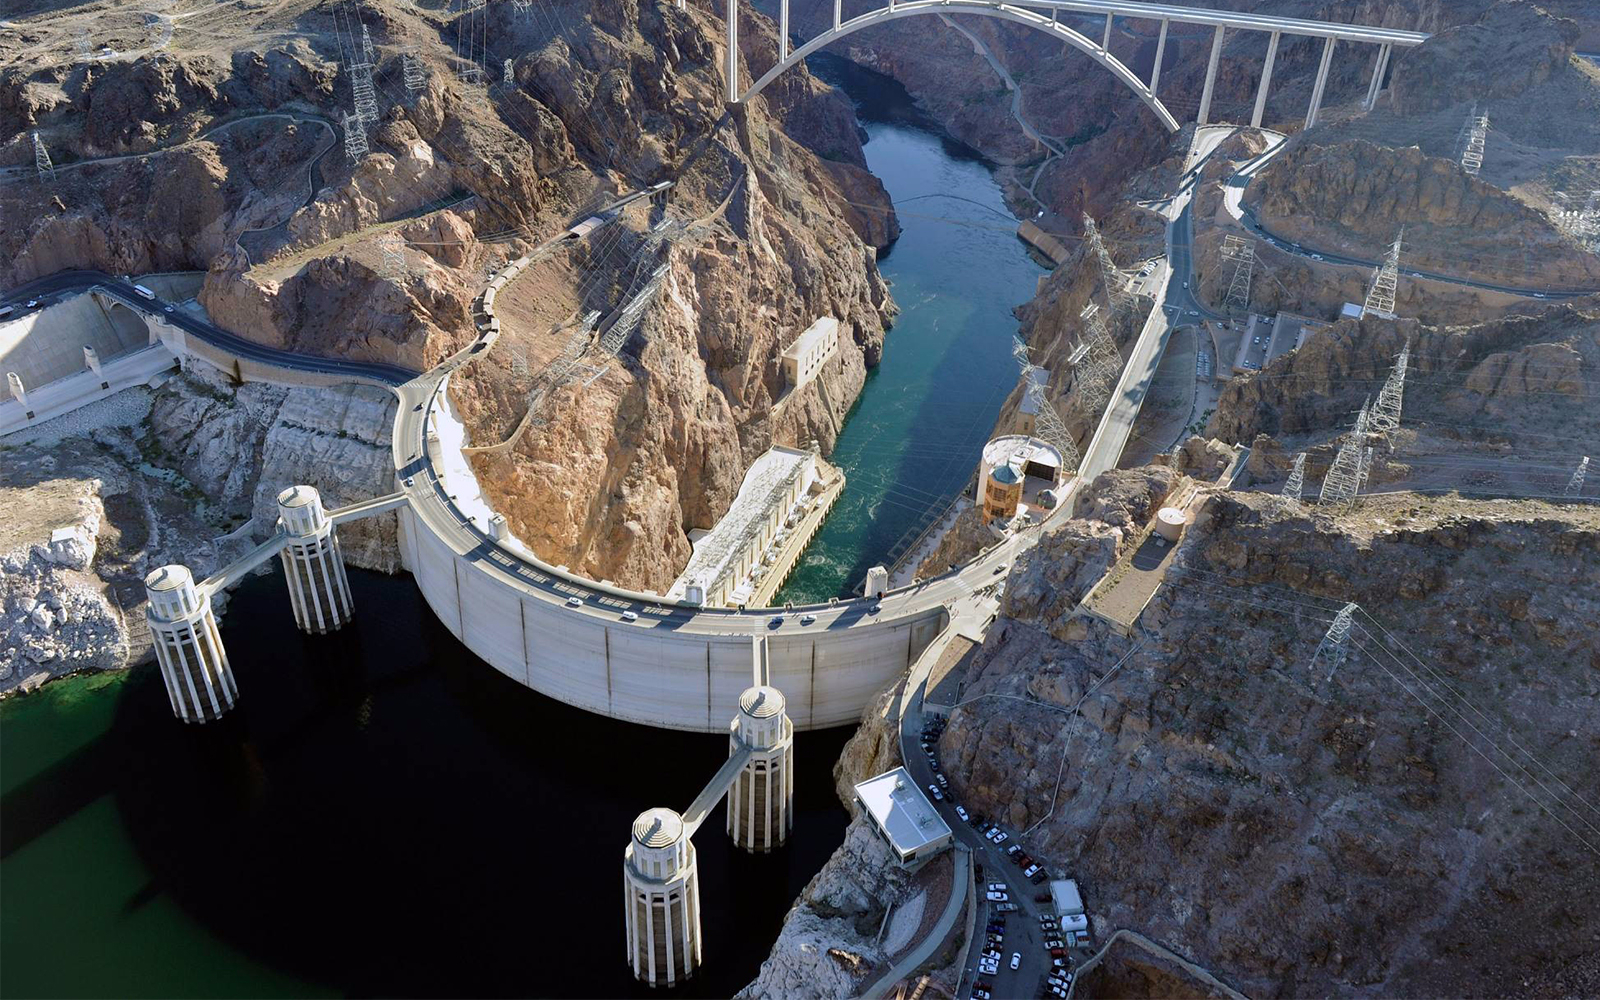 grand canyon helicopter tours prices with Hoover Dam Helicopter And Raft Tour on Visionary Air And Hoover Dam Bus Tour furthermore Grand Canyon Connoisseur With Helicopter also Mini Baja Chase Night together with Mustang Faq besides Havasu falls packages.